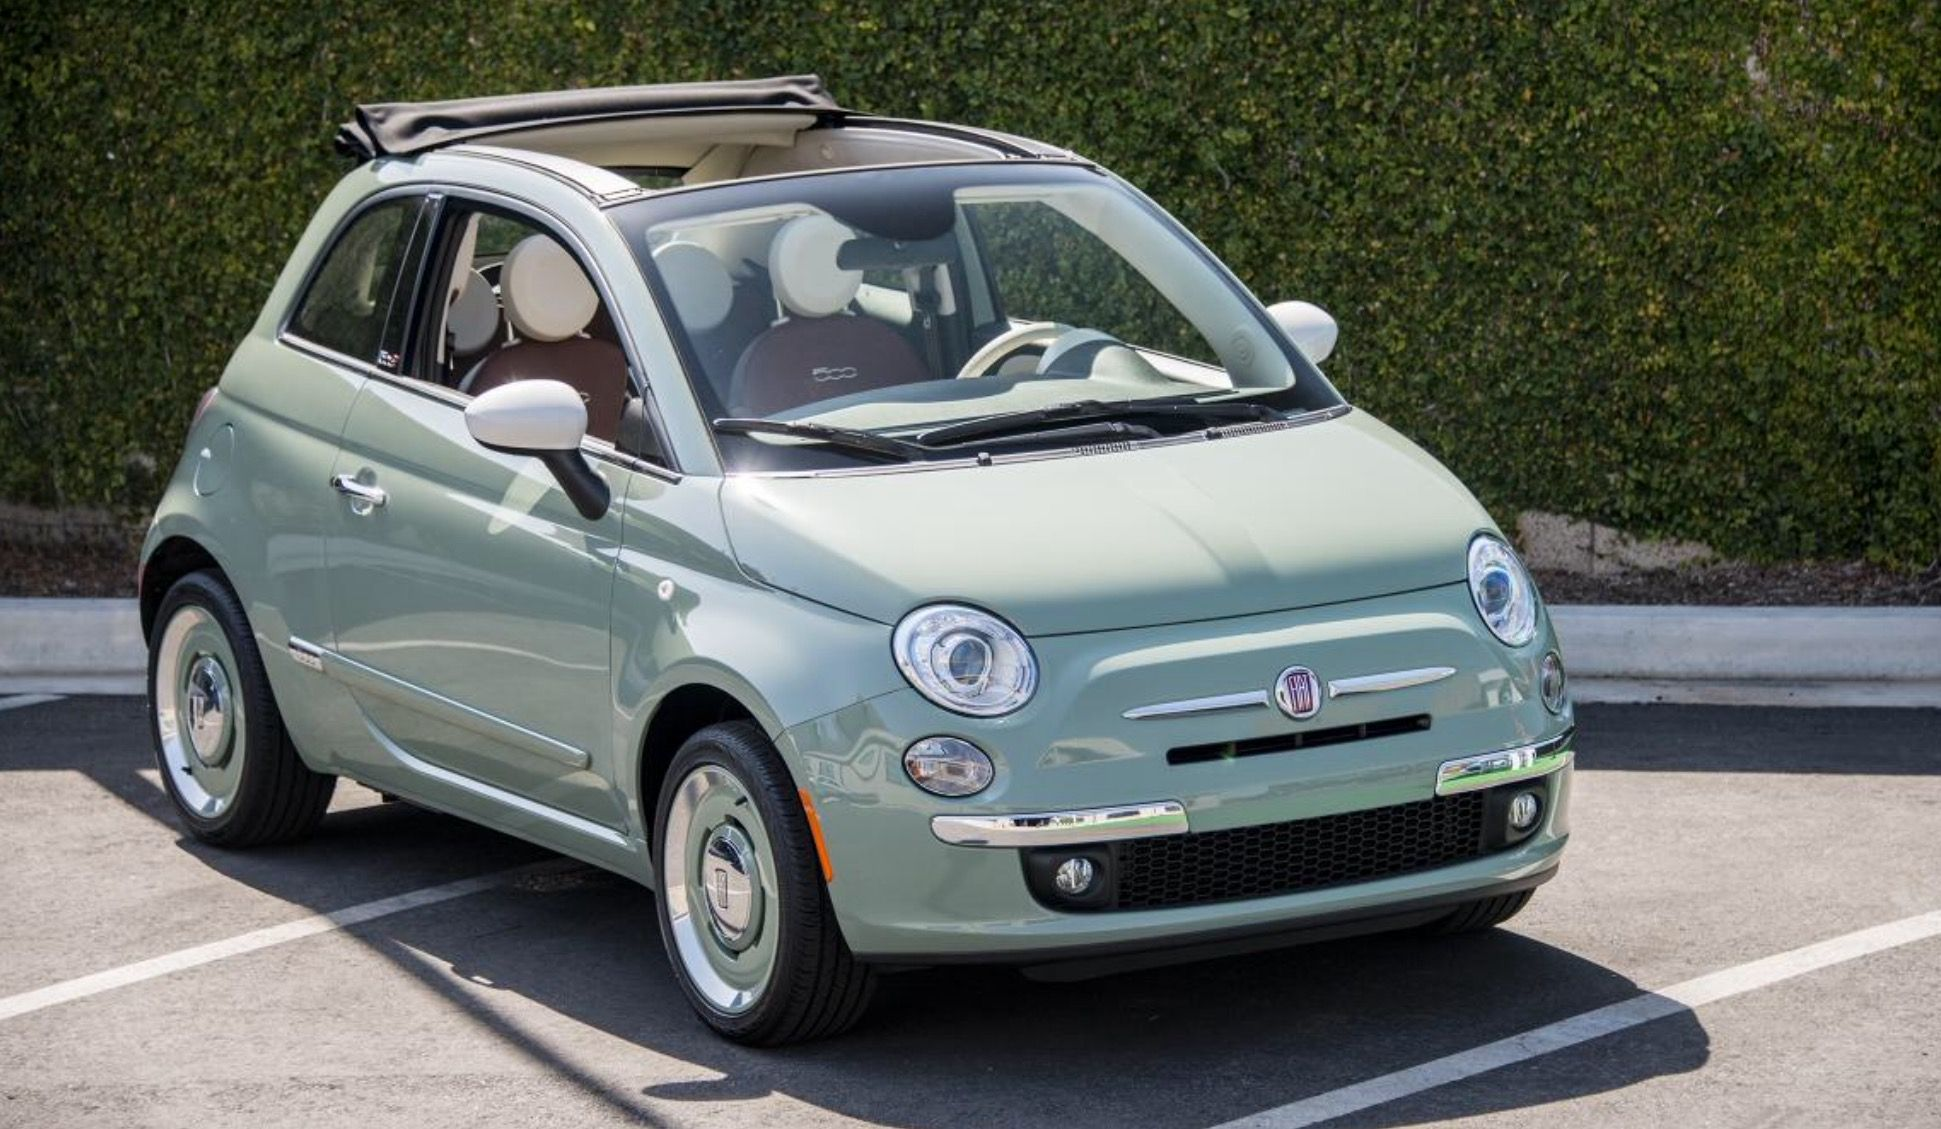 Pin By Daphne On Random Fiat 500 Cabrio Fiat 500 Fiat 500c